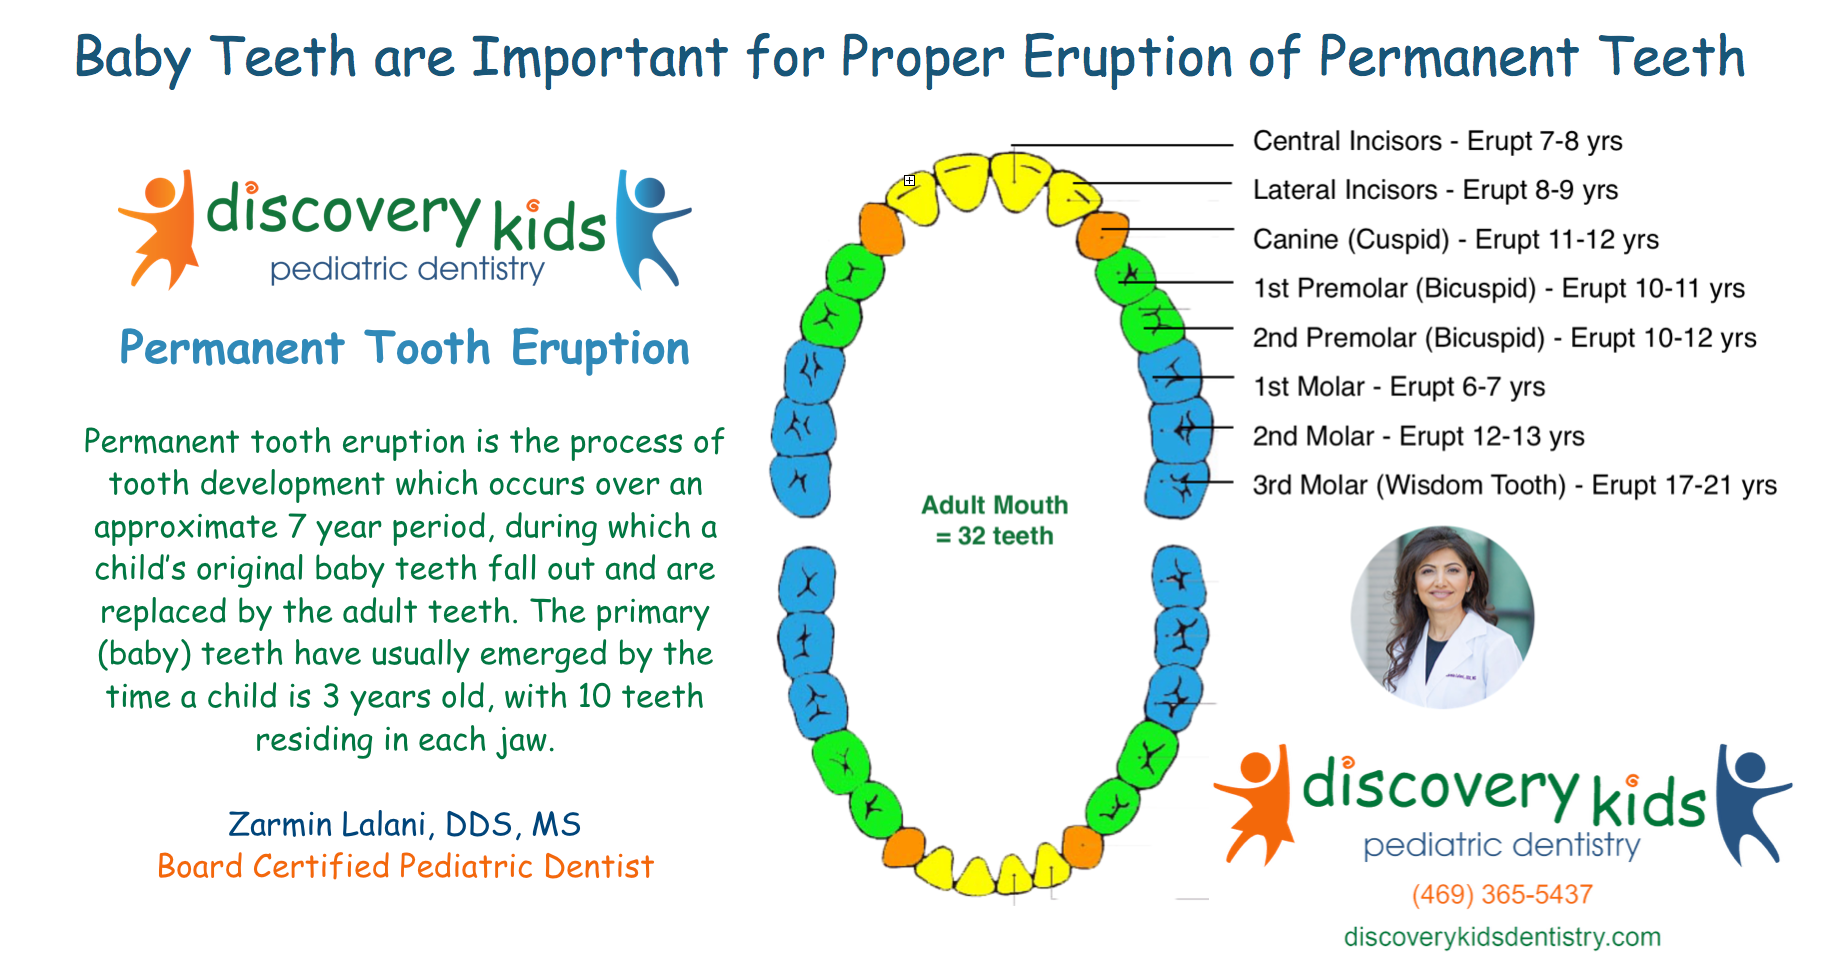 permanent teeth eruption chart: Permanent tooth eruption in kids discovery kids pediatric dentistry